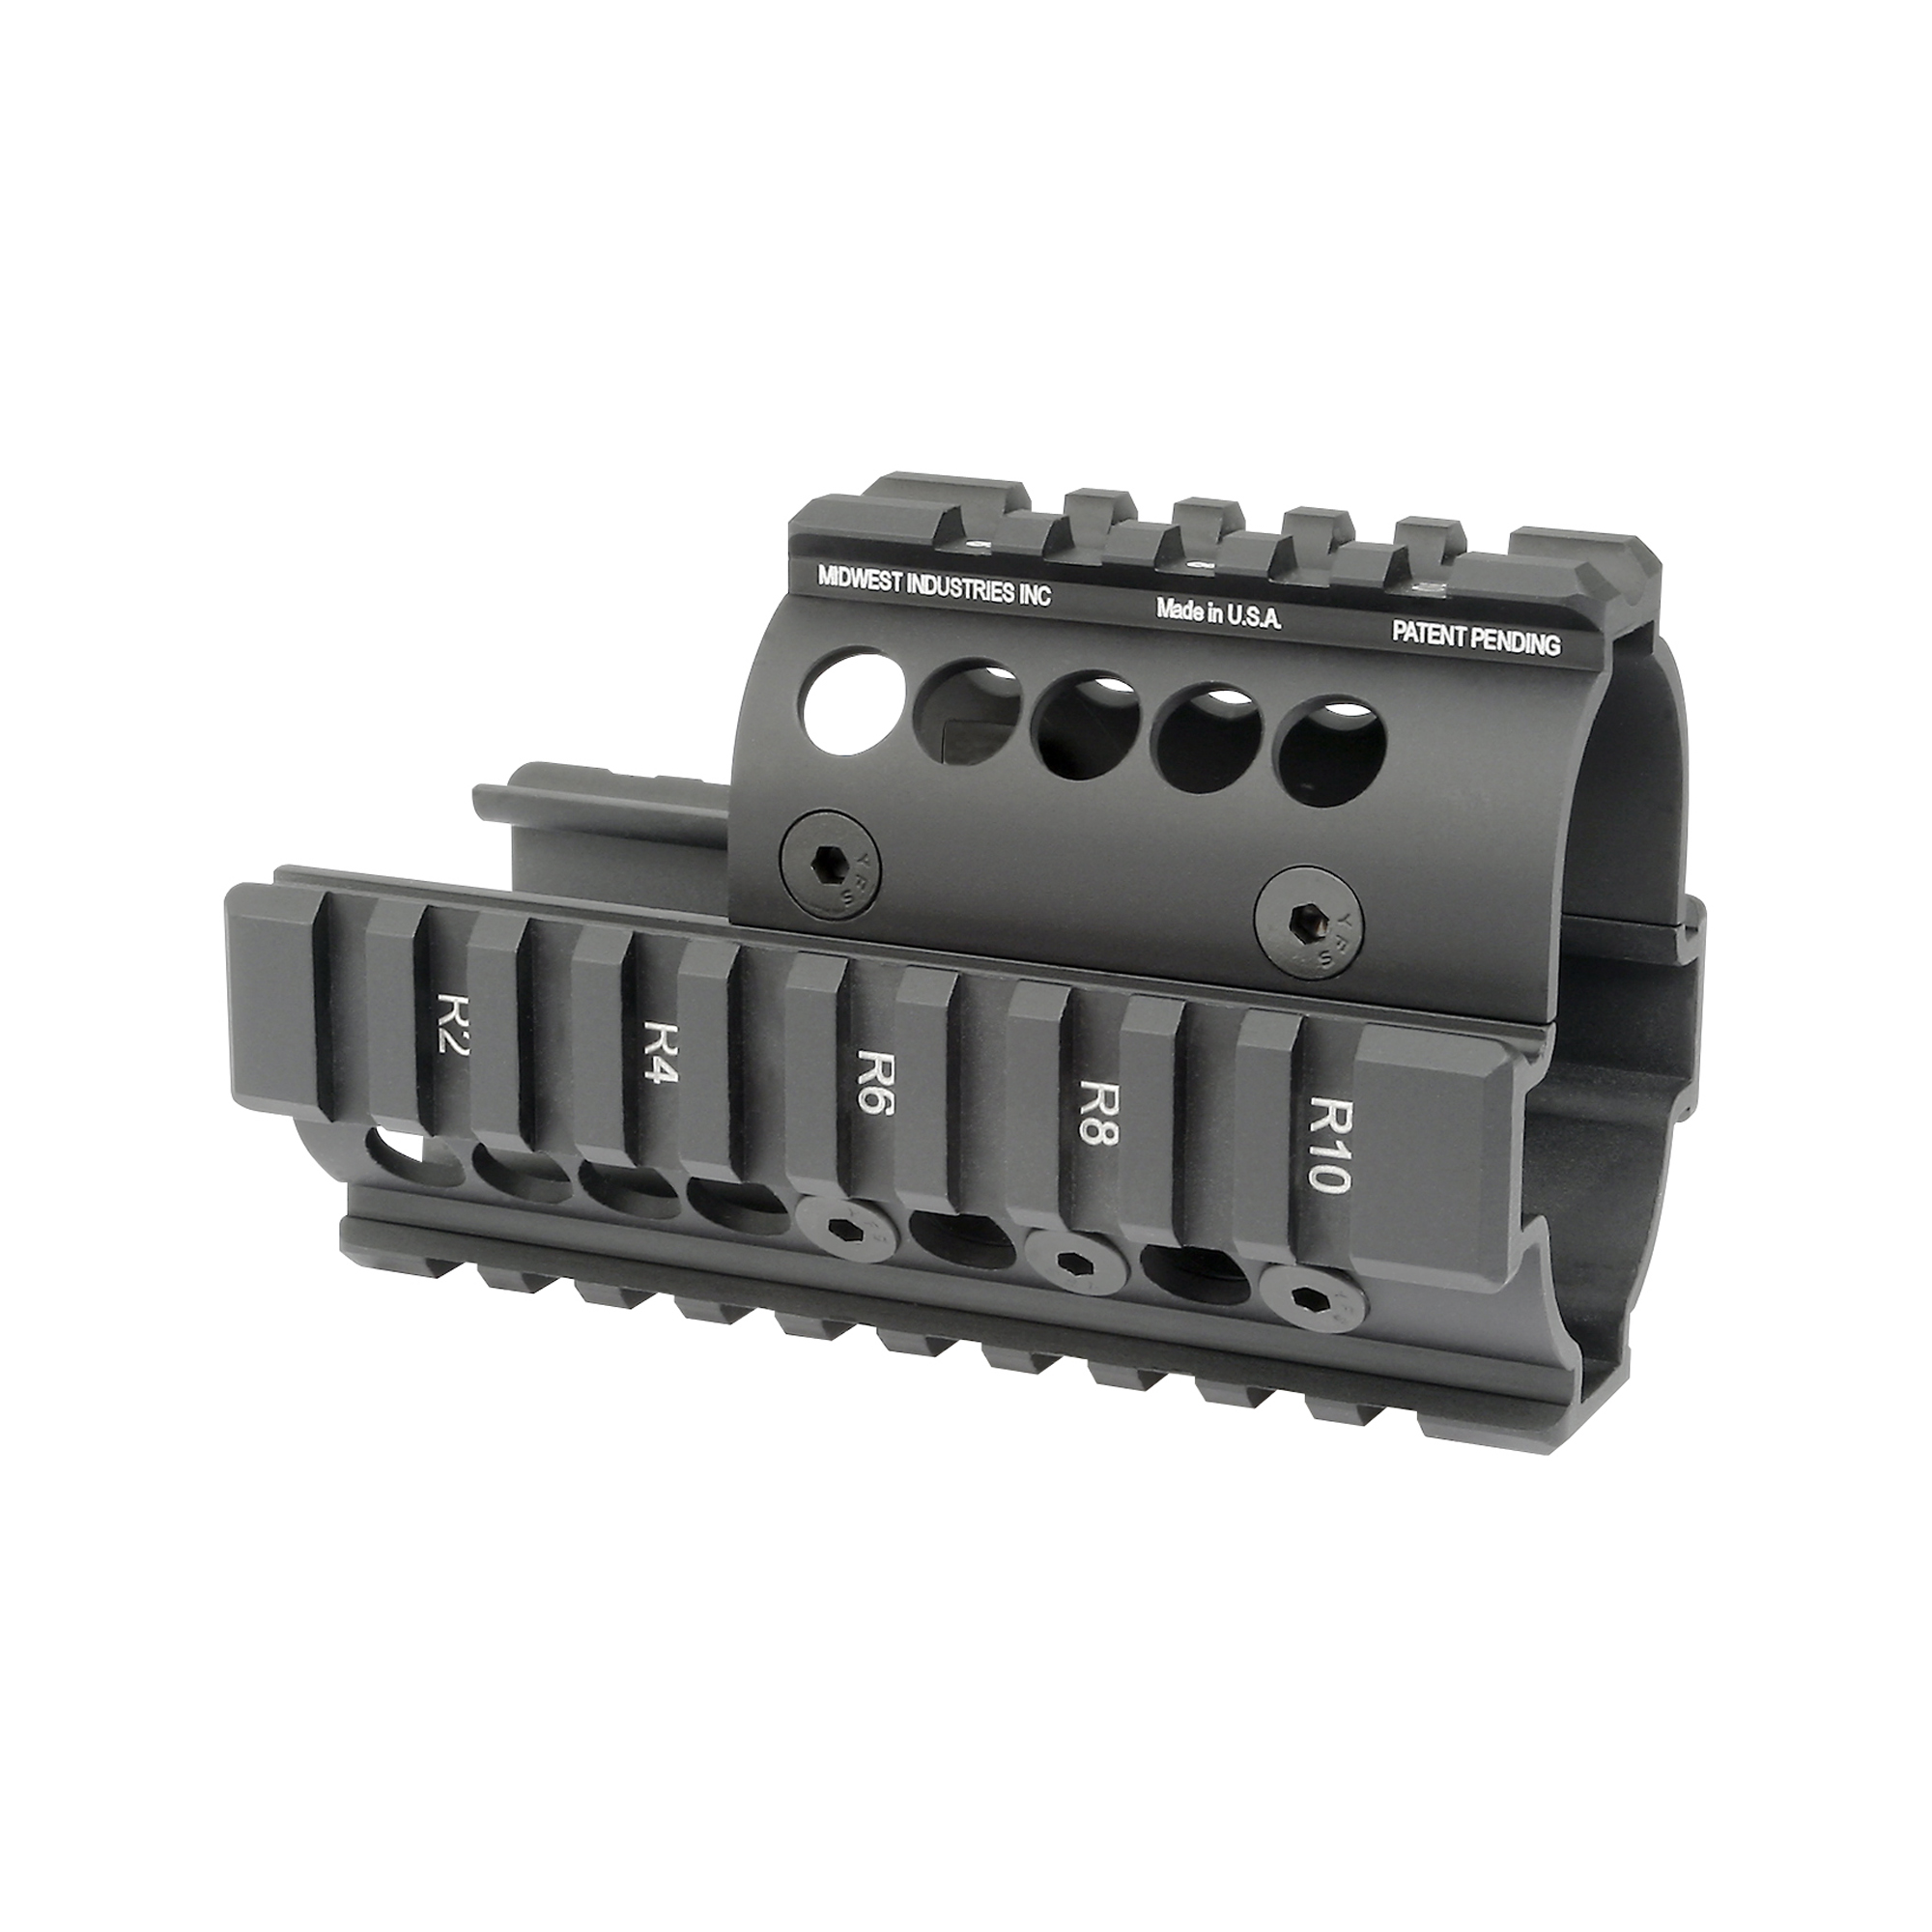 "Midwest Industries is a proven leader in the firearm industry. Made in America"" focusing on the small details to make your rifle platform better. The addition of their AK series of handguards to your rifle platform creates the rail space you need to add your accessories and change the feel of your rifle with a new streamline design. This Mini Draco Pistol 4-Rail Handguard has high quality T-marked mil-spec 1913 rails for lights"" lasers and optics. It installs in minutes using nothing but the wrenches that come in the kit."